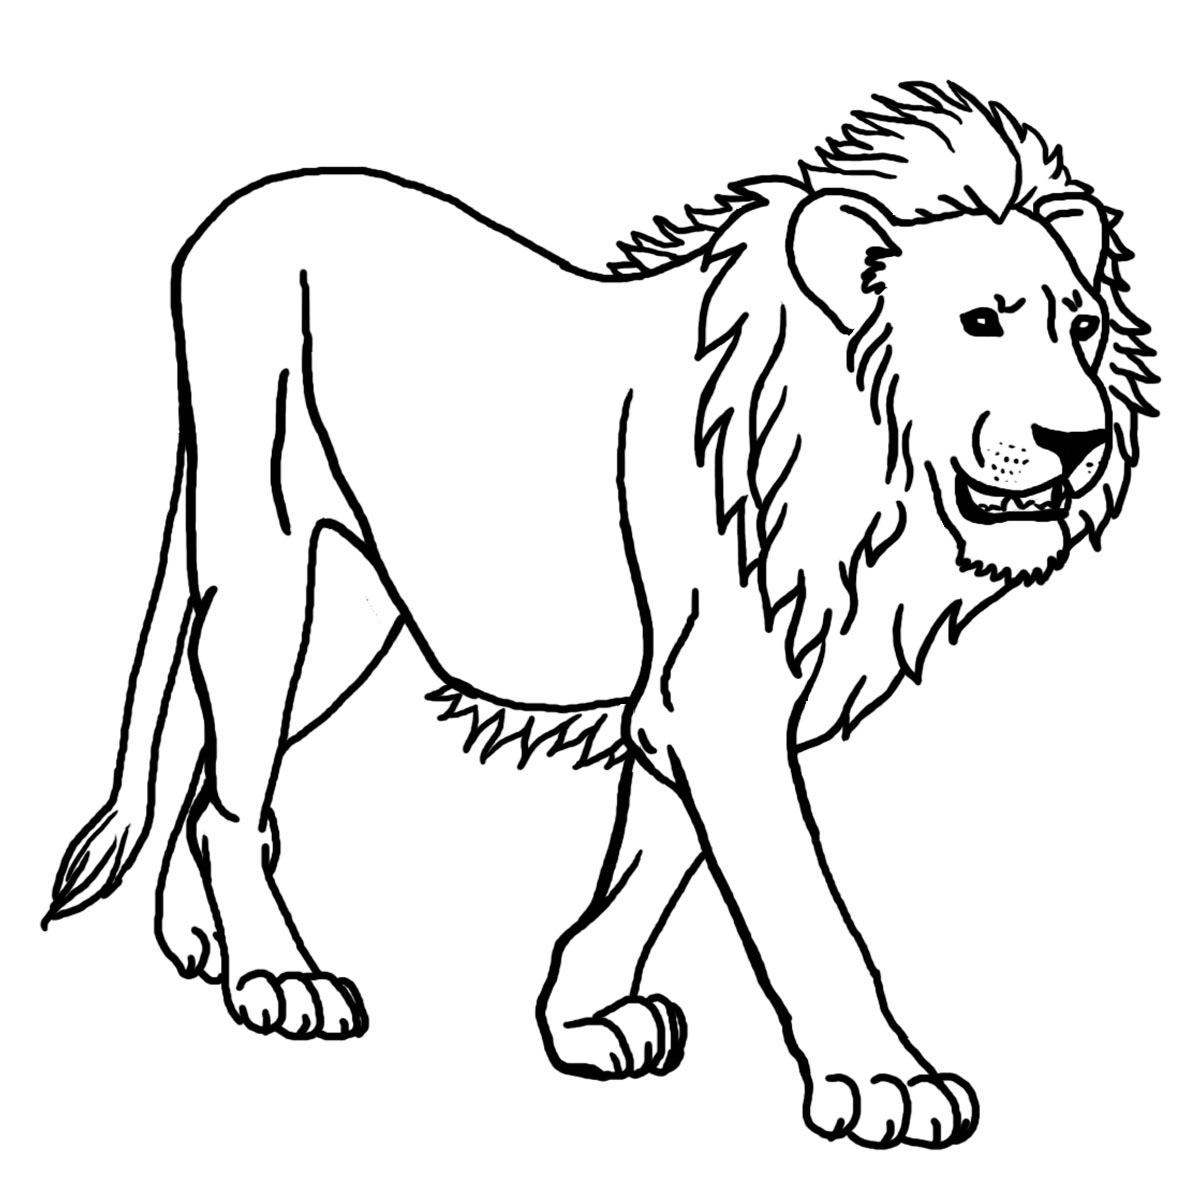 Coloring Page : Simple Lion. Simple Lion